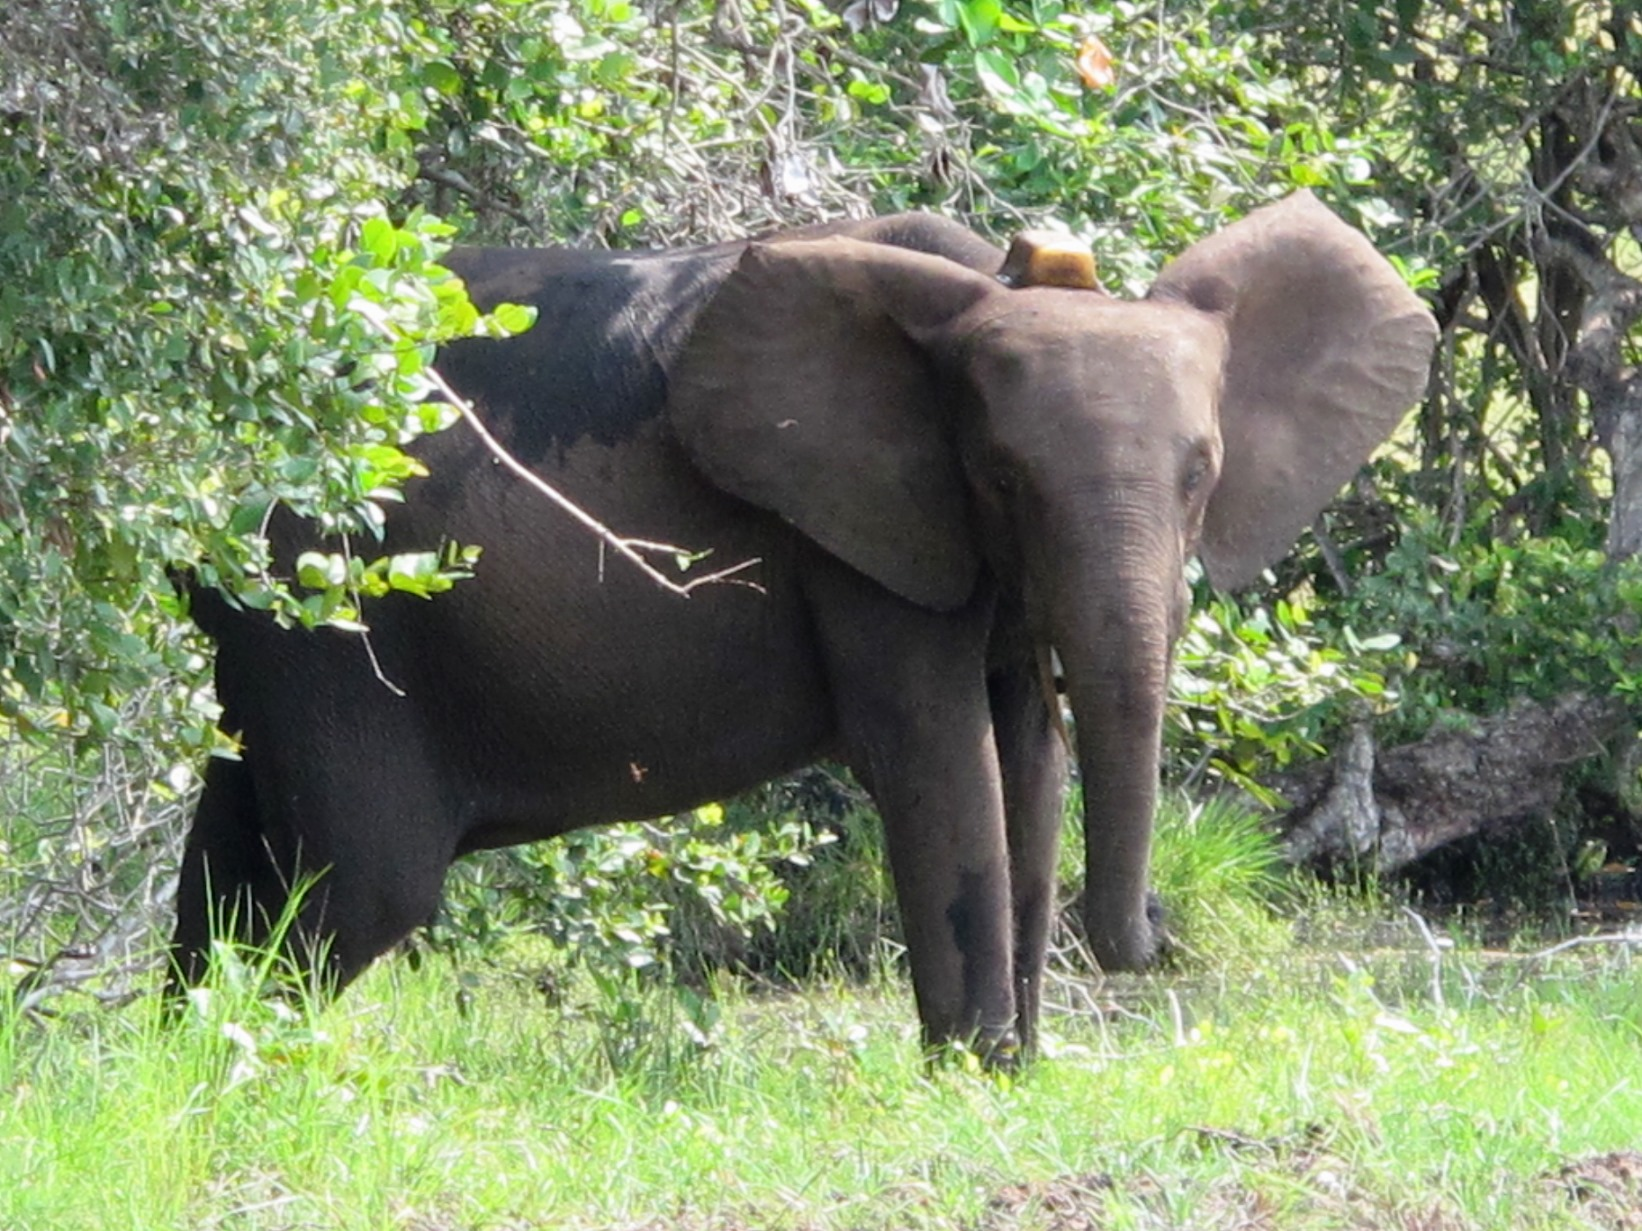 An elephant in Gabon's Loango National Park wearing a collar fitted with a GPS tracking tag at the top. The WIPER sensor would be integrated into the unit.